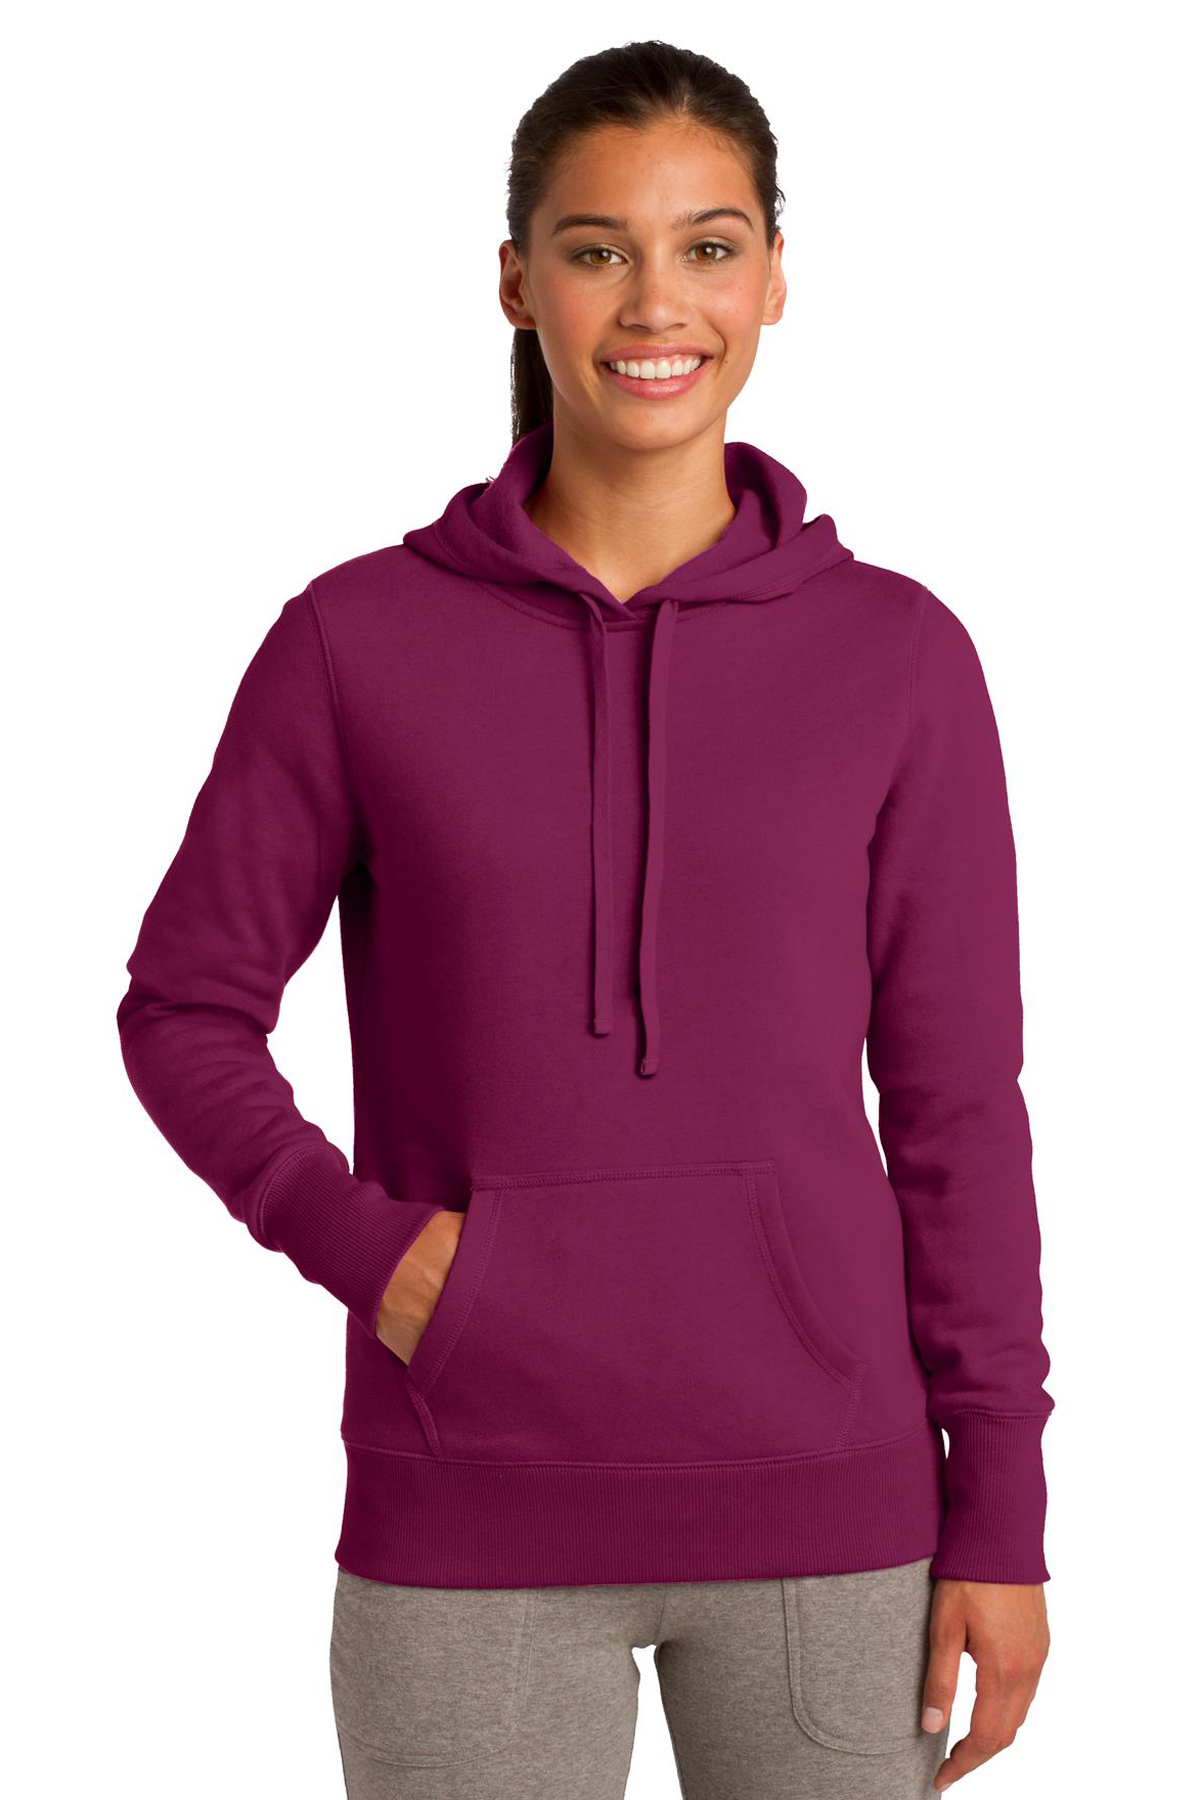 Sweatshirts-Fleece-Hooded-38